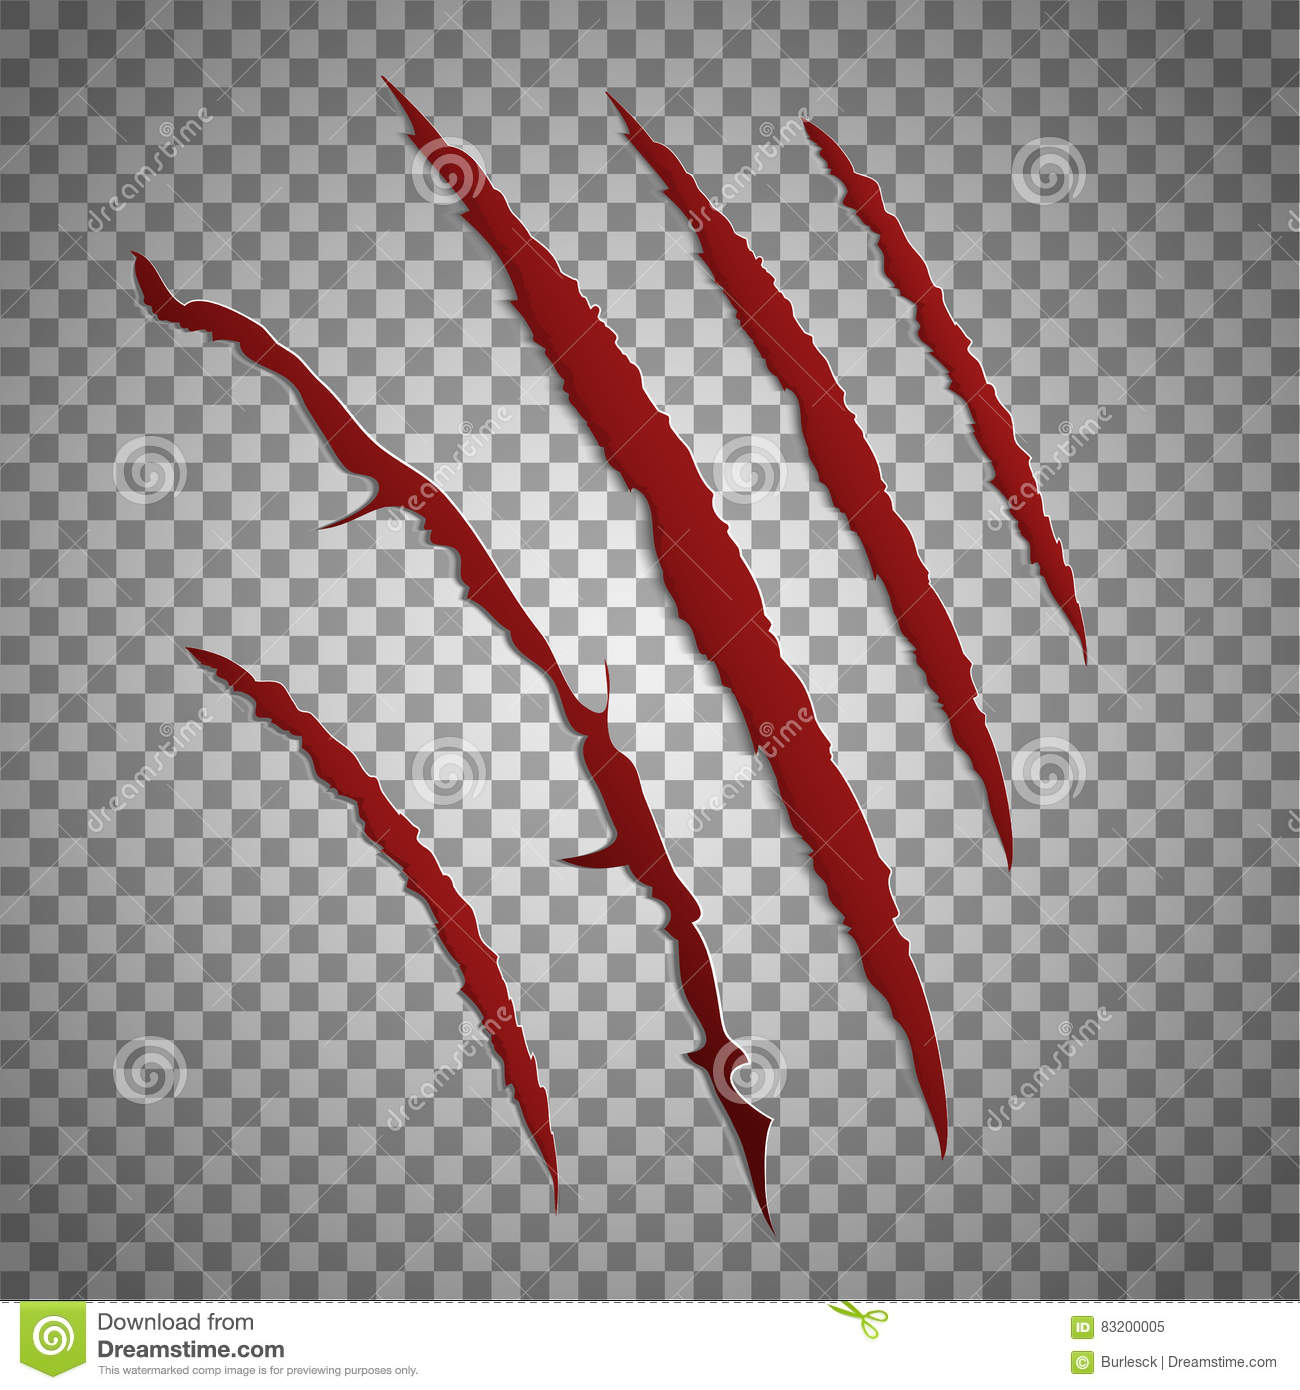 hight resolution of claw mark slash stock illustrations 348 claw mark slash stock illustrations vectors clipart dreamstime